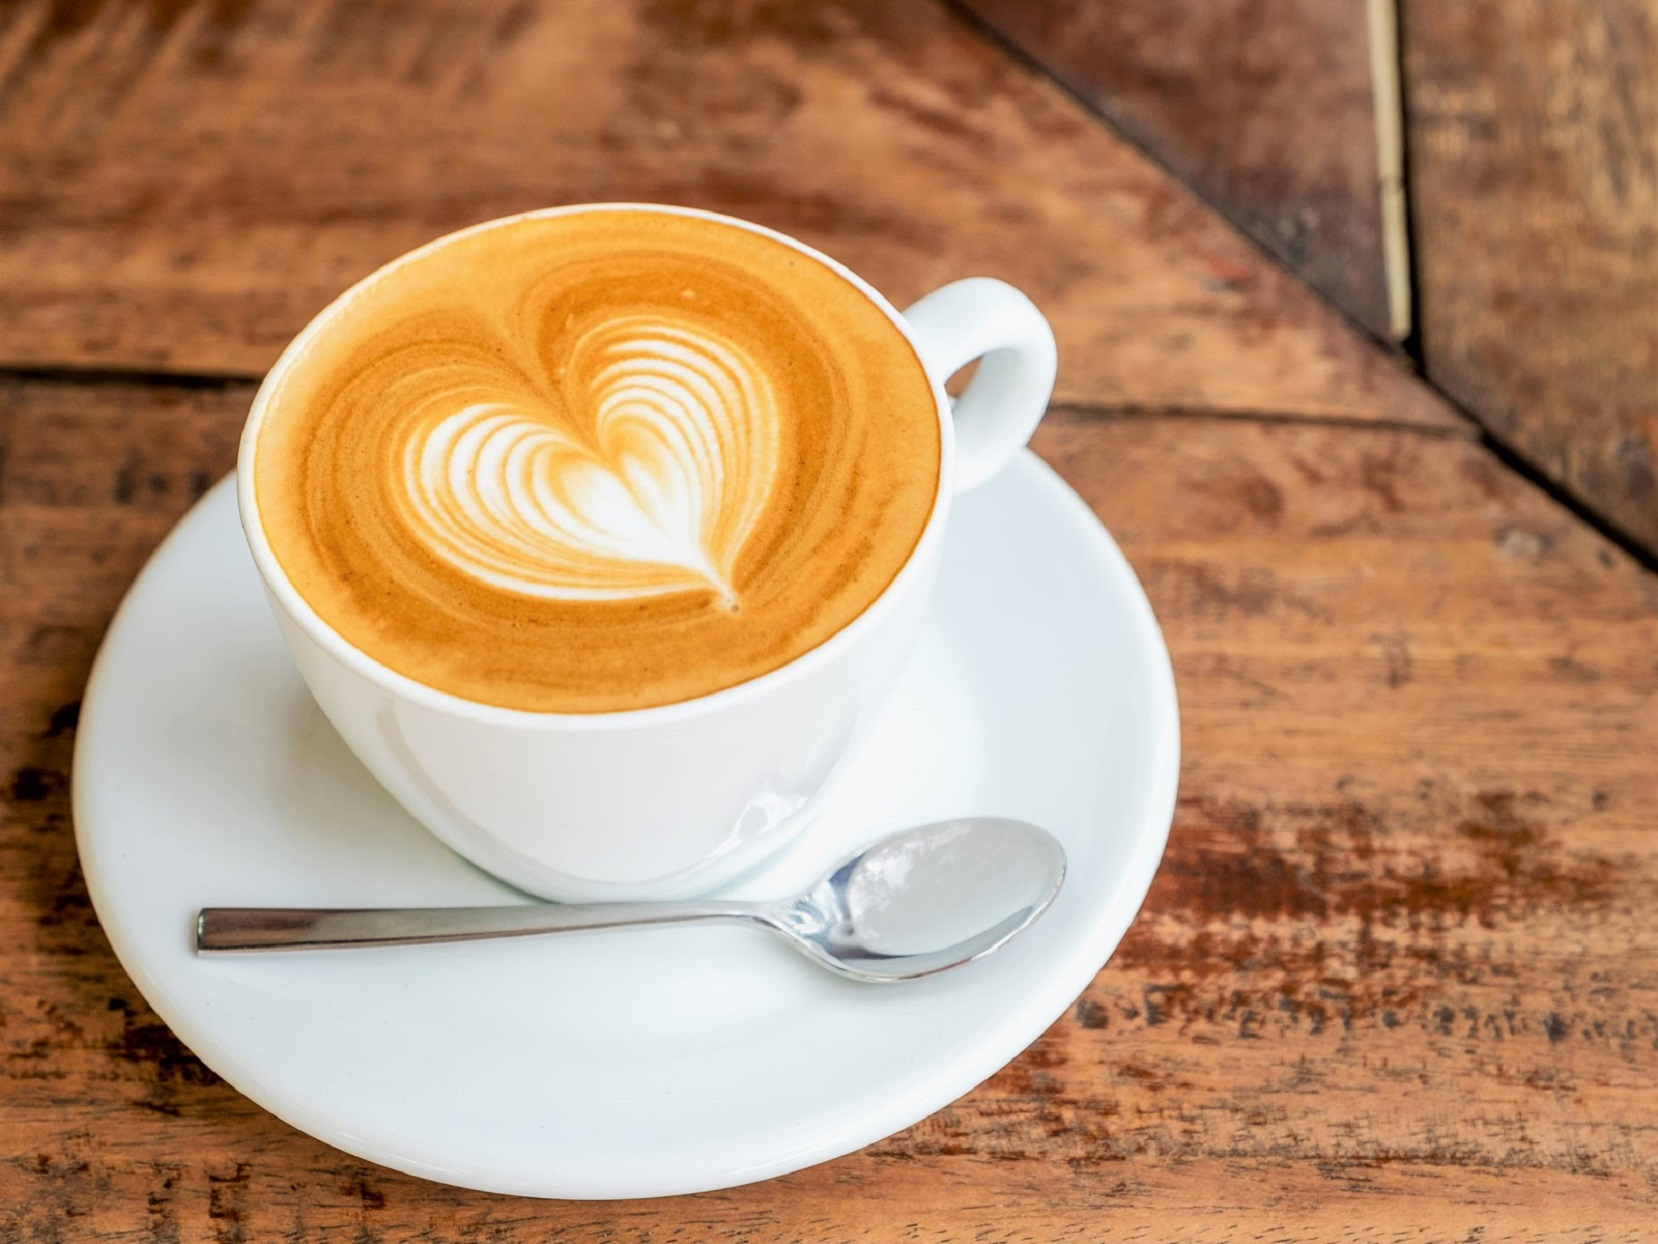 National Coffee Day 2019: Where to Find Free Coffee and Other Deals